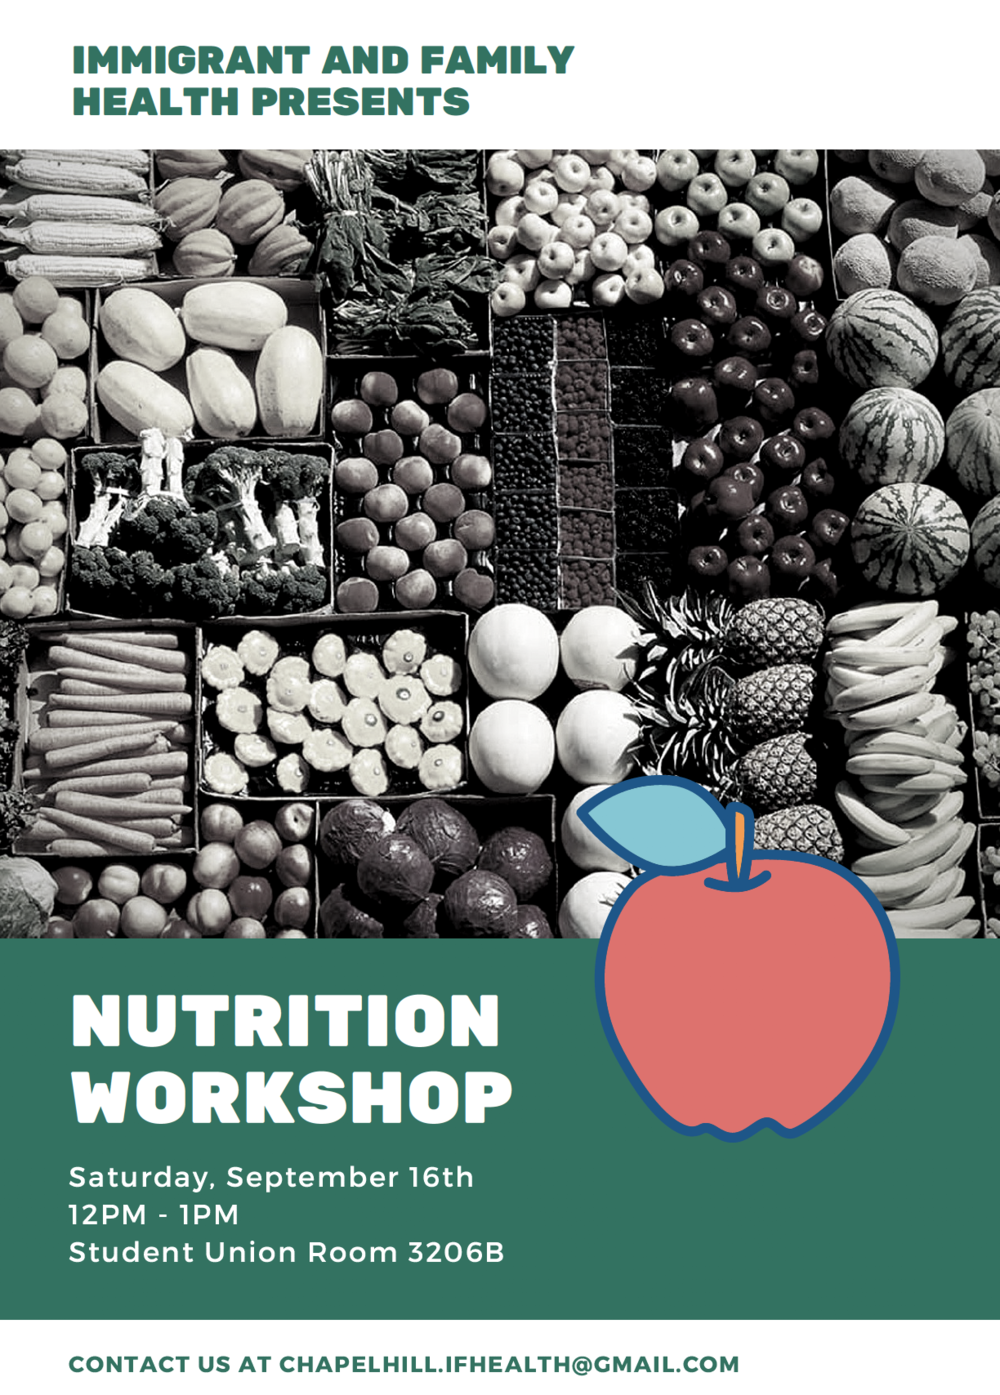 Our first Nutrition Workshop! - We, at I.F. Health, are excited to kick-start our monthly health workshops in the North Carolina Chapel Hill area.Thanks to all those who volunteered, organized, and donated to make these community health workshops happen. We could not have done it without your support!On September 16th, 2017 at the Carolina Union Room 3206B, I.F. Health will be hosting a Nutrition Workshop from 12PM to 1PM.Come join us to learn about nutrition and how you can make your life healthier by eating healthier foods.This event is entirely free! Thanks and see you all there!